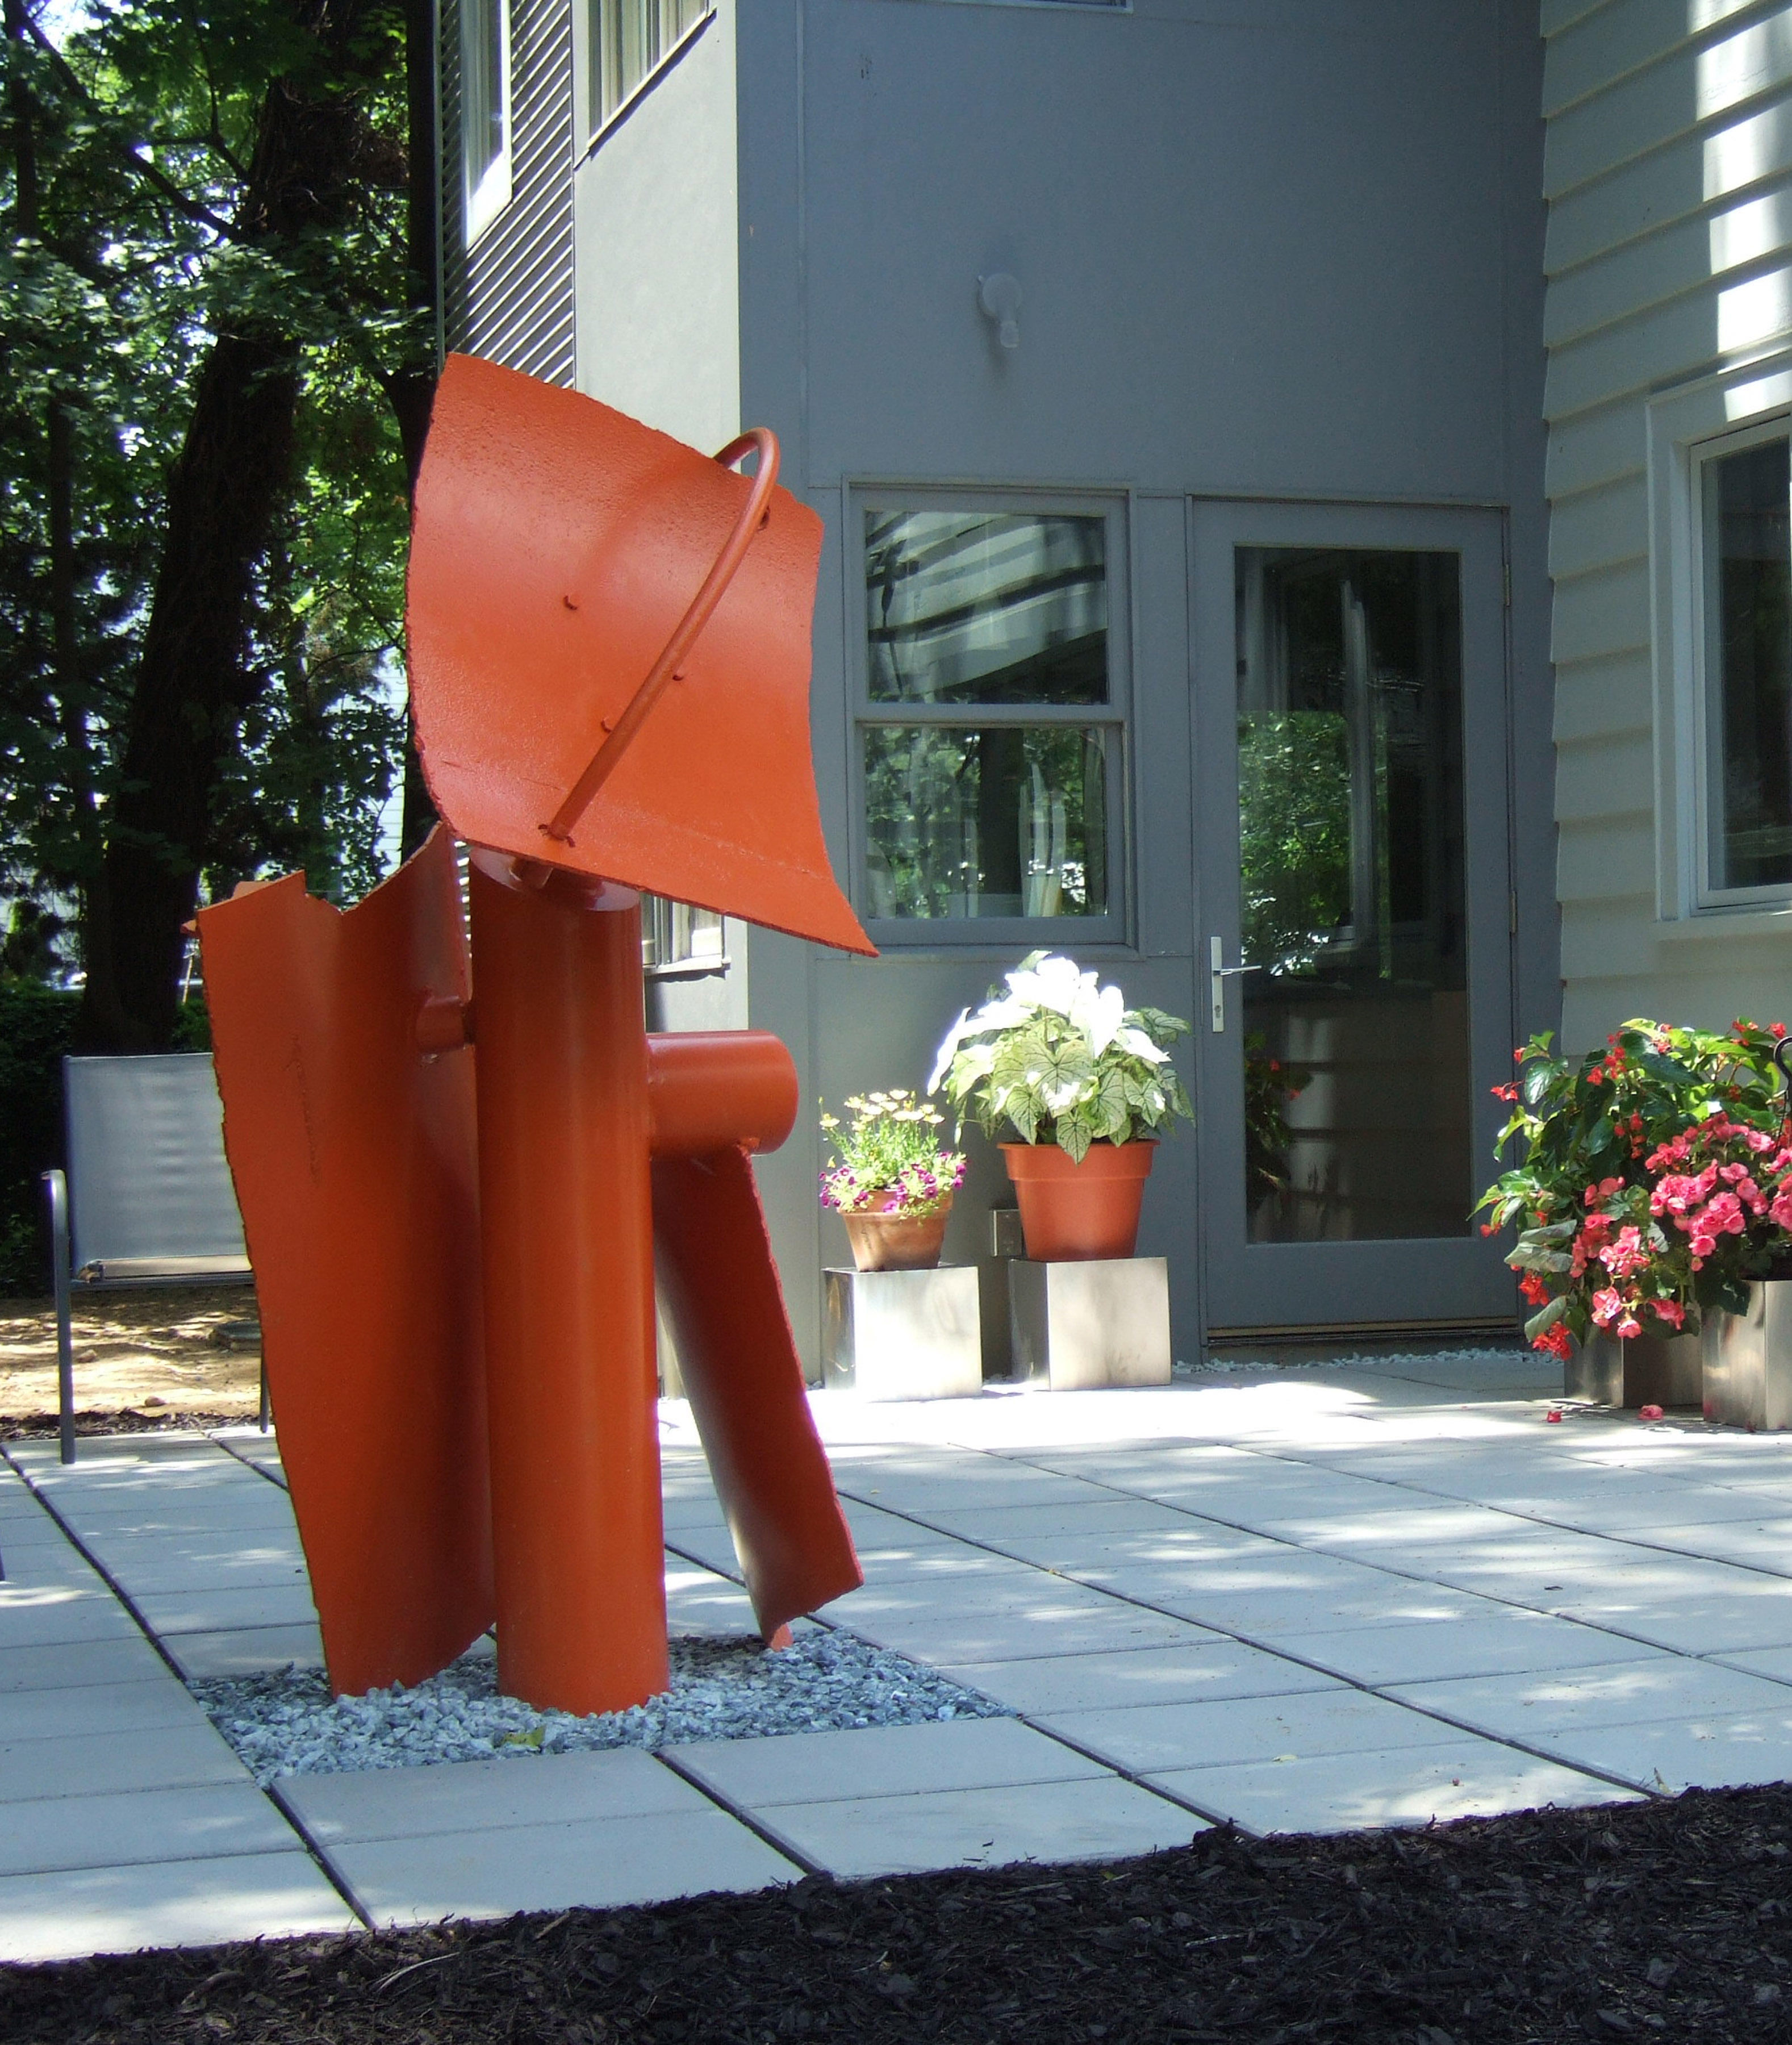 Abstract steel sculpture orange painted Finish